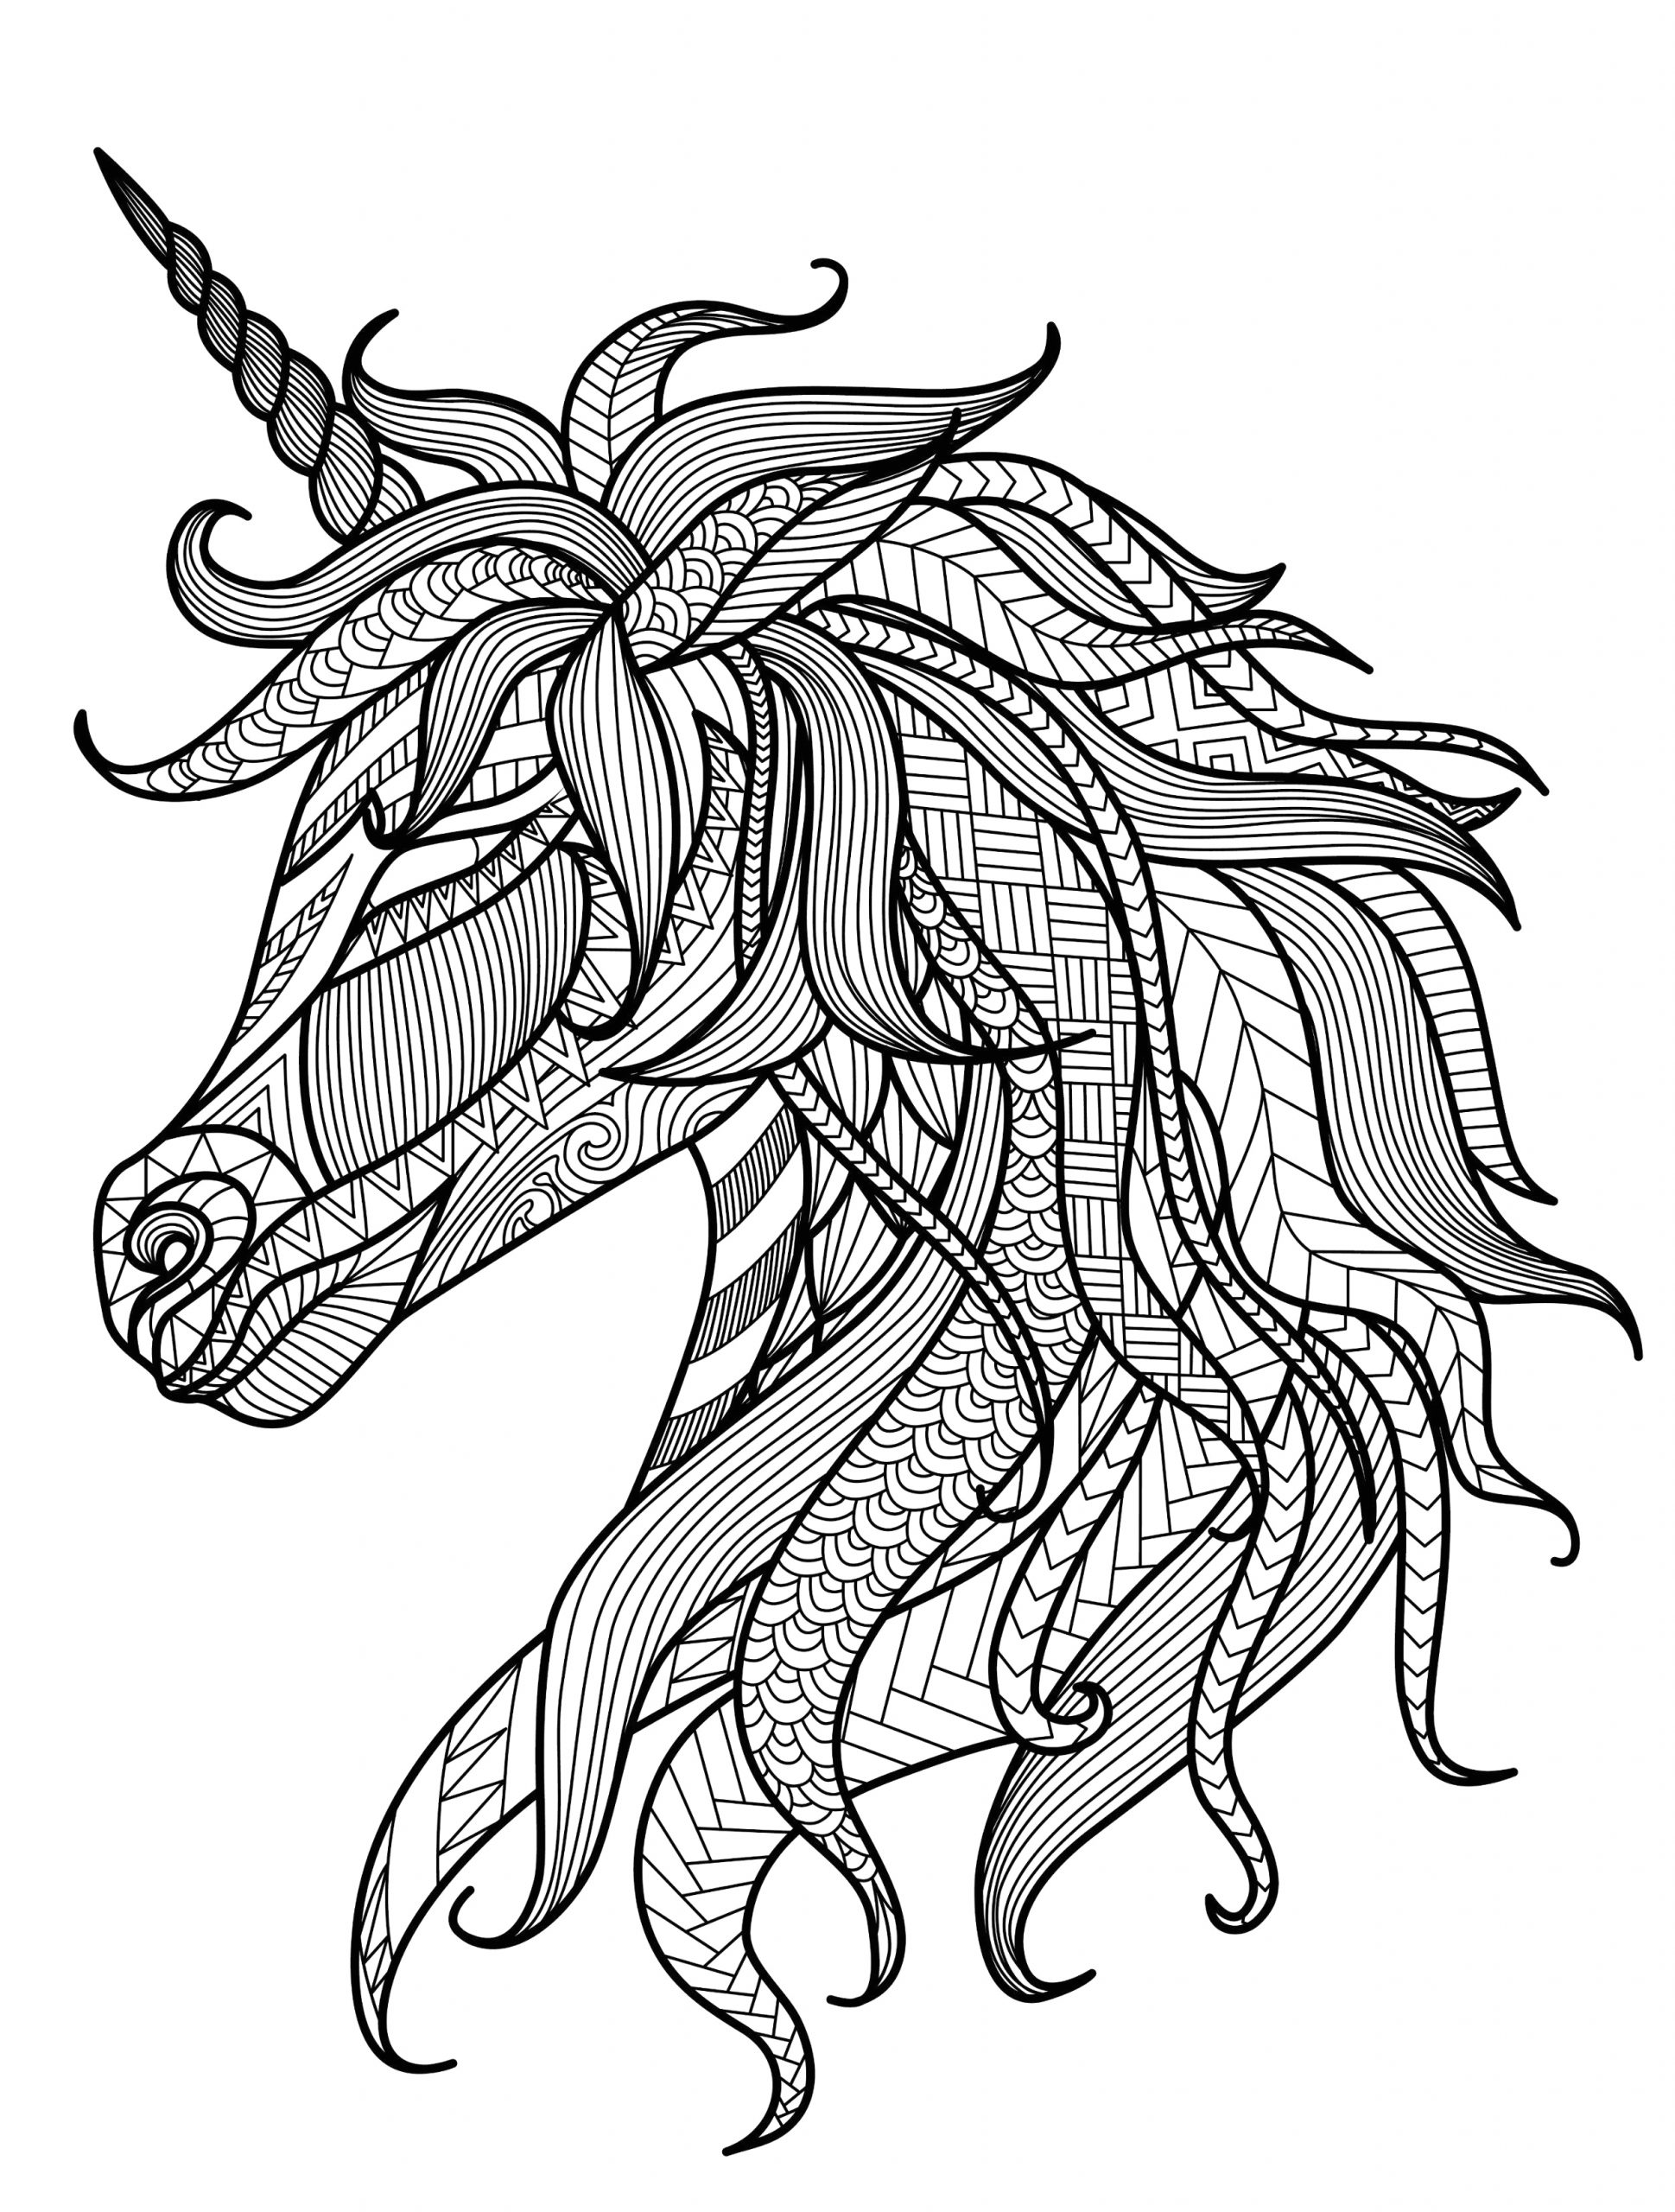 Free Printable Unicorn Coloring Pages for Adults Pin On Zen Coloring